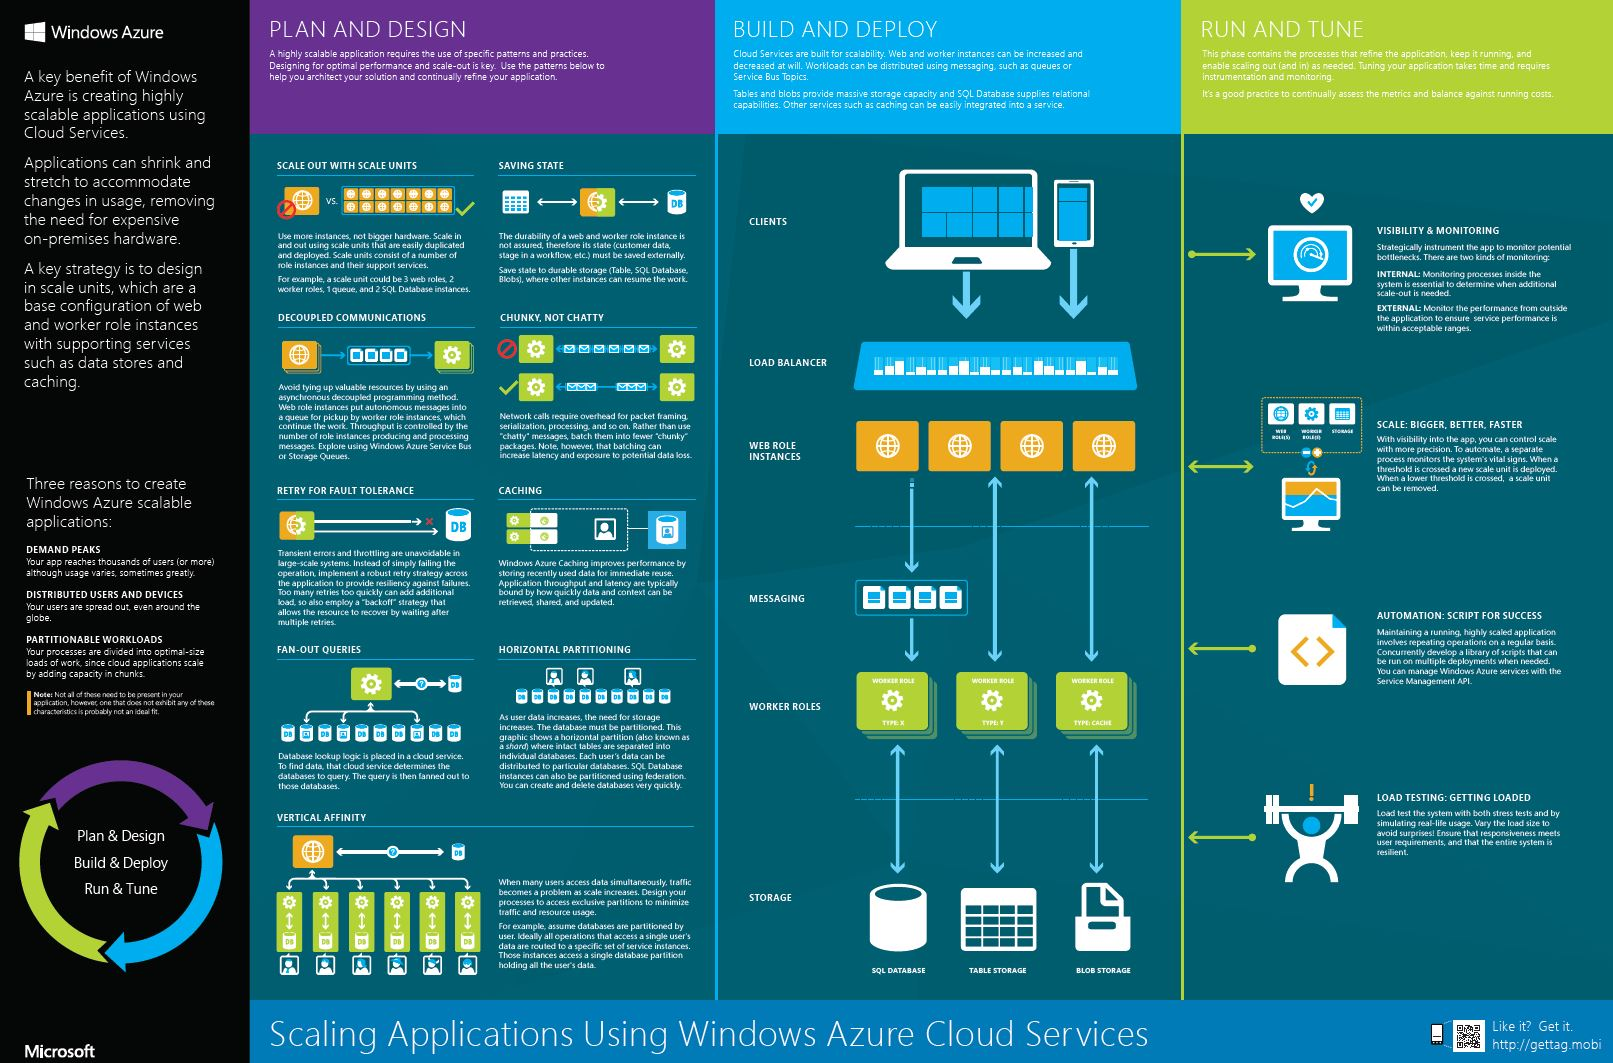 scaling applications using microsoft windowsazure cloud services